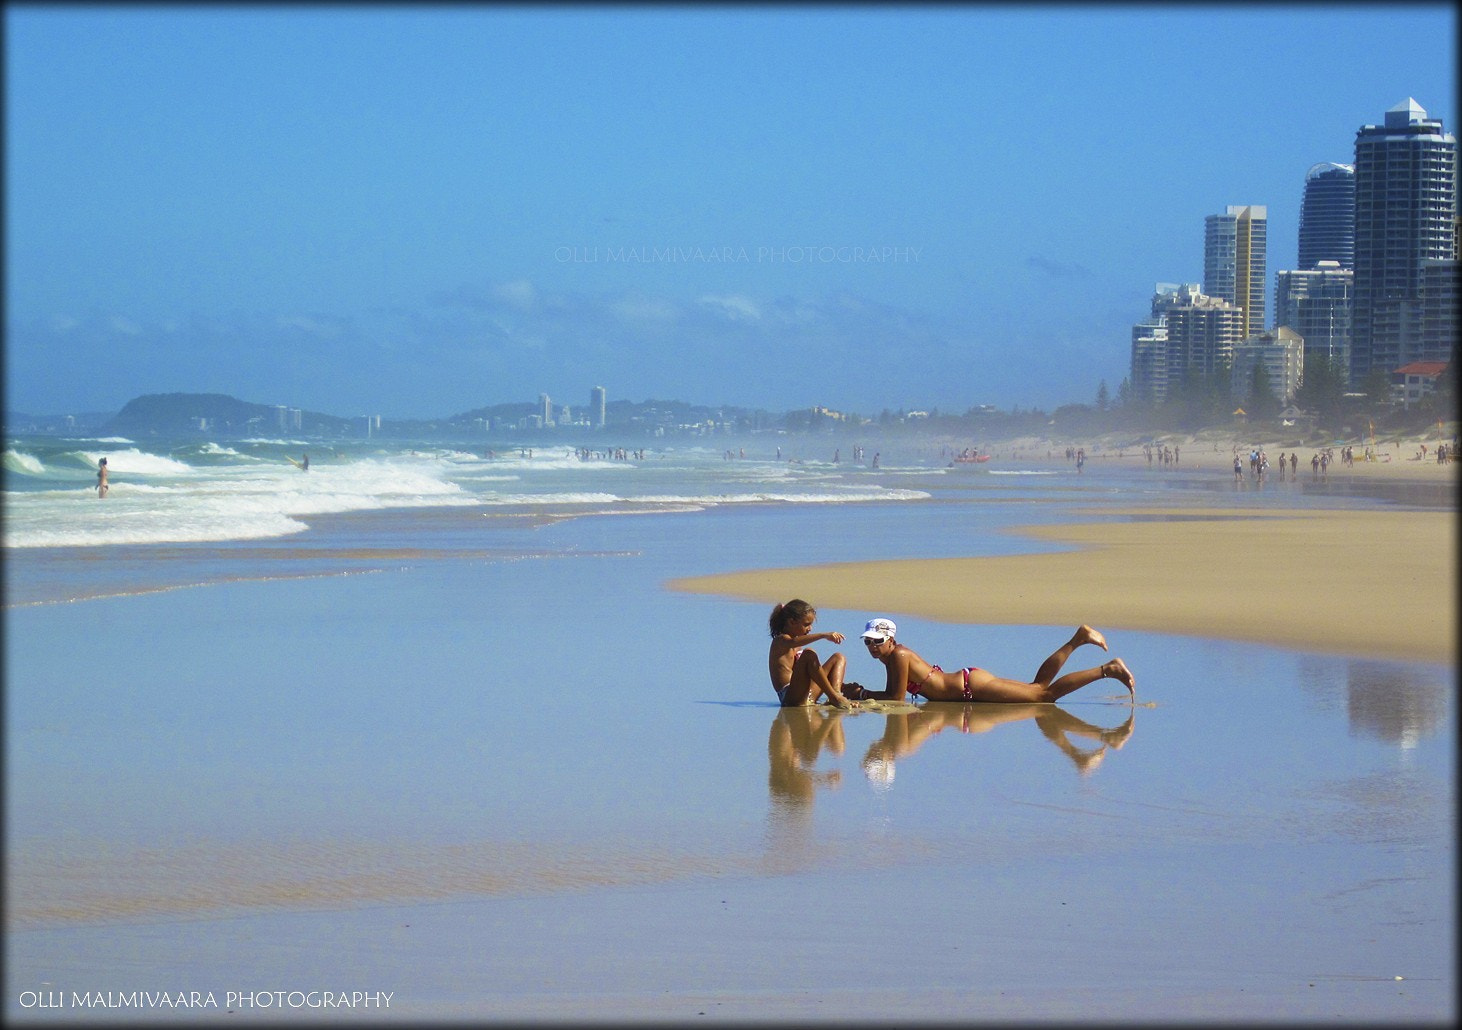 Photograph Surfers Paradise by Olli Malmivaara on 500px